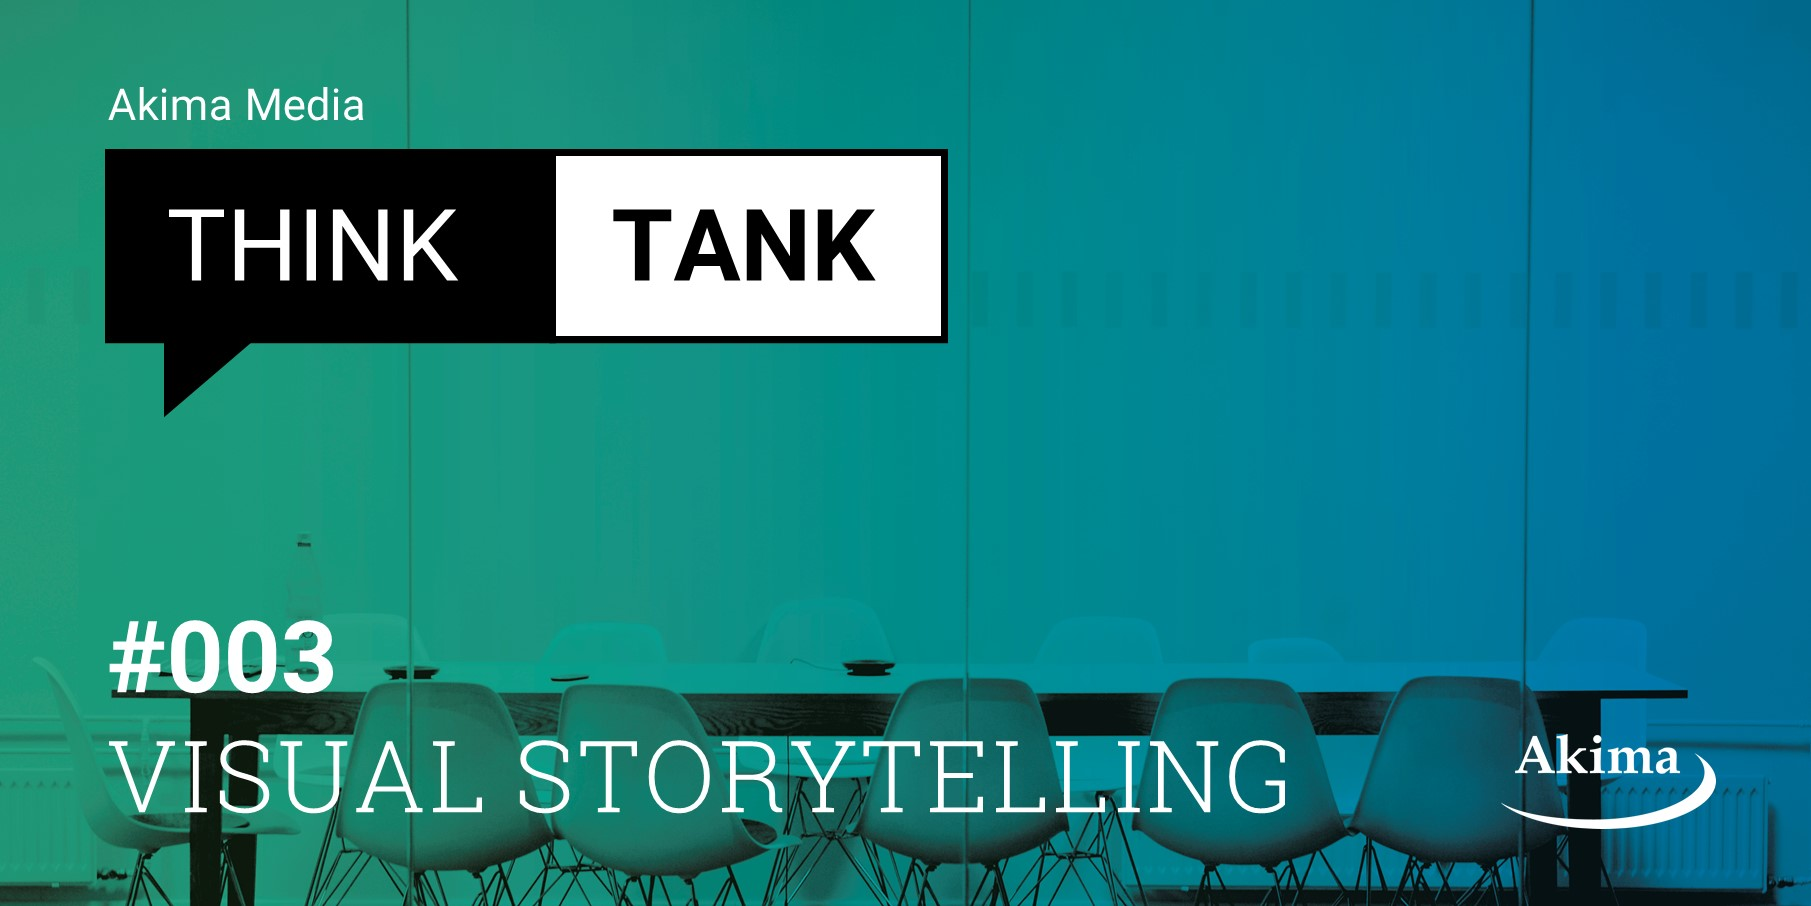 "Der Akima Media Think Tank ""Visual Storytelling"" findet am 8. November 2019 in München statt."